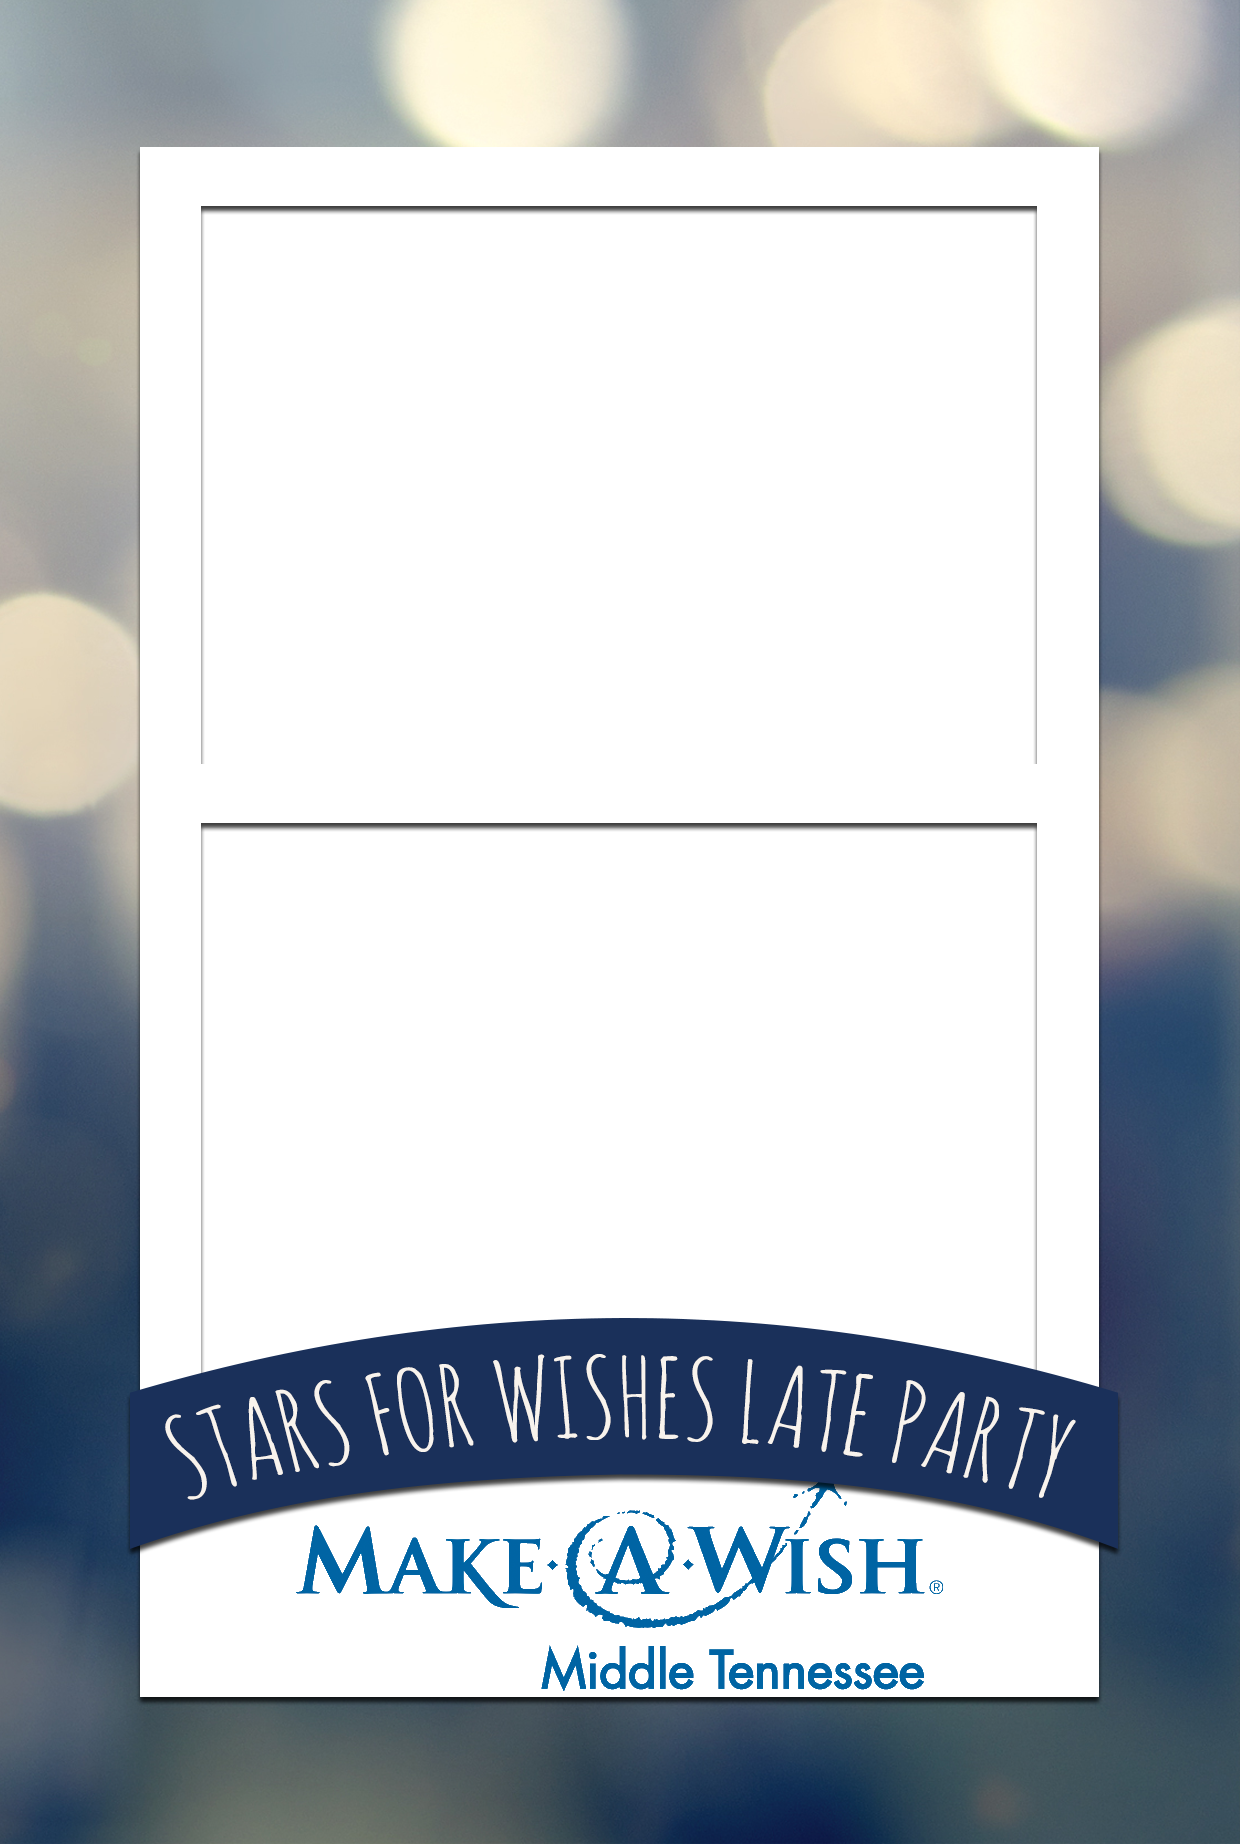 1-14-17Stars for Wishes Template.png